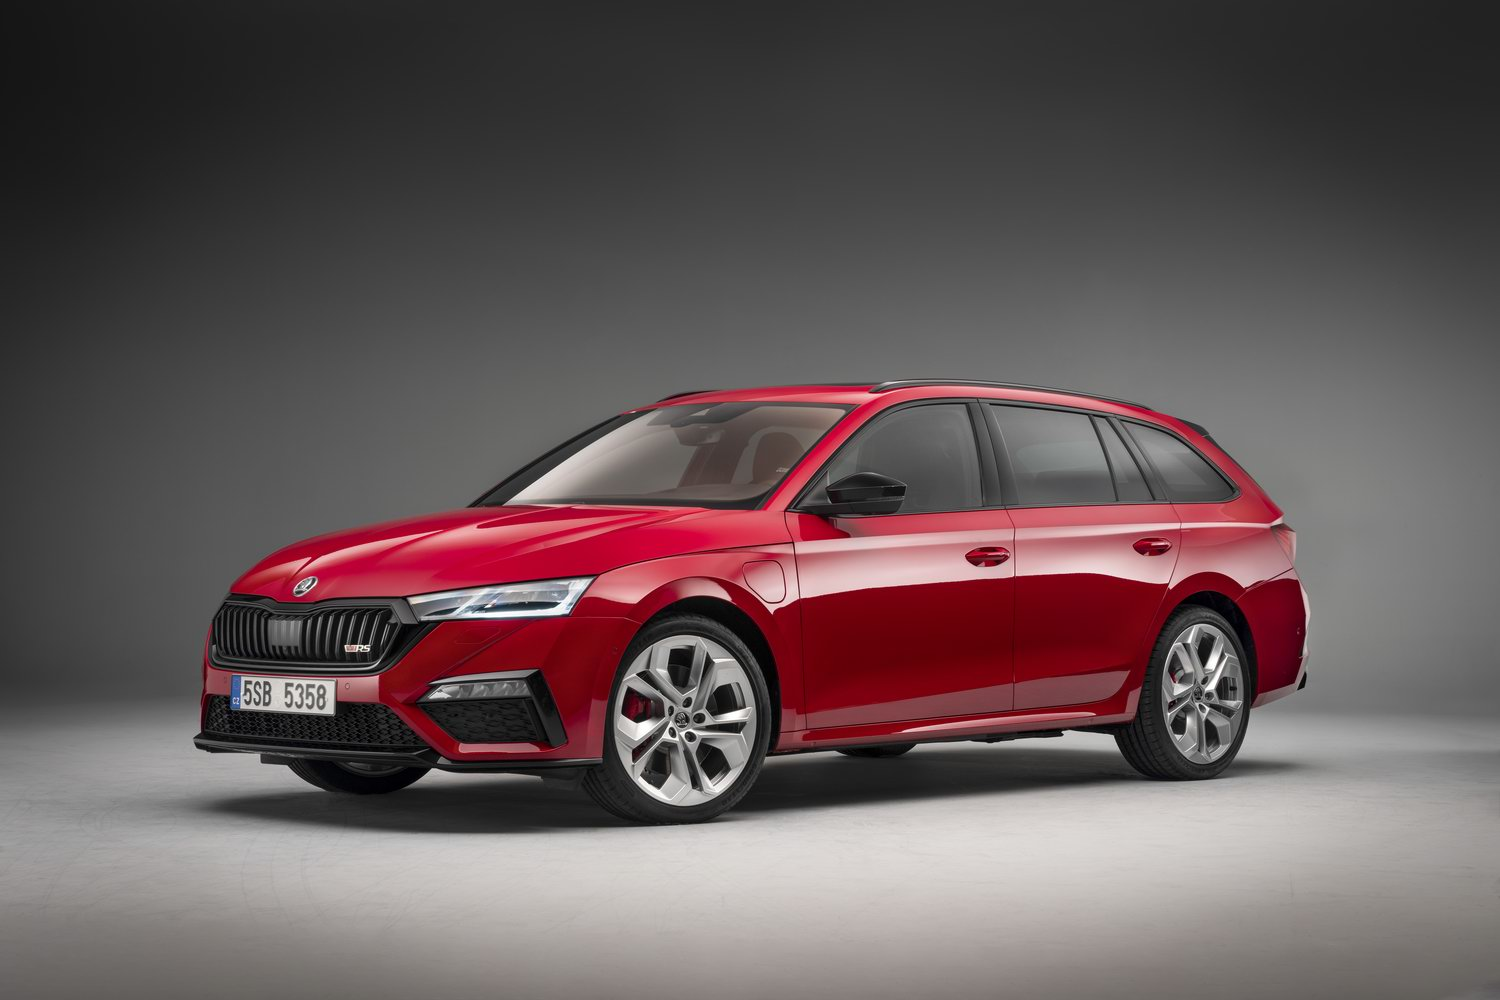 New Skoda Octavia RS to be a hybrid